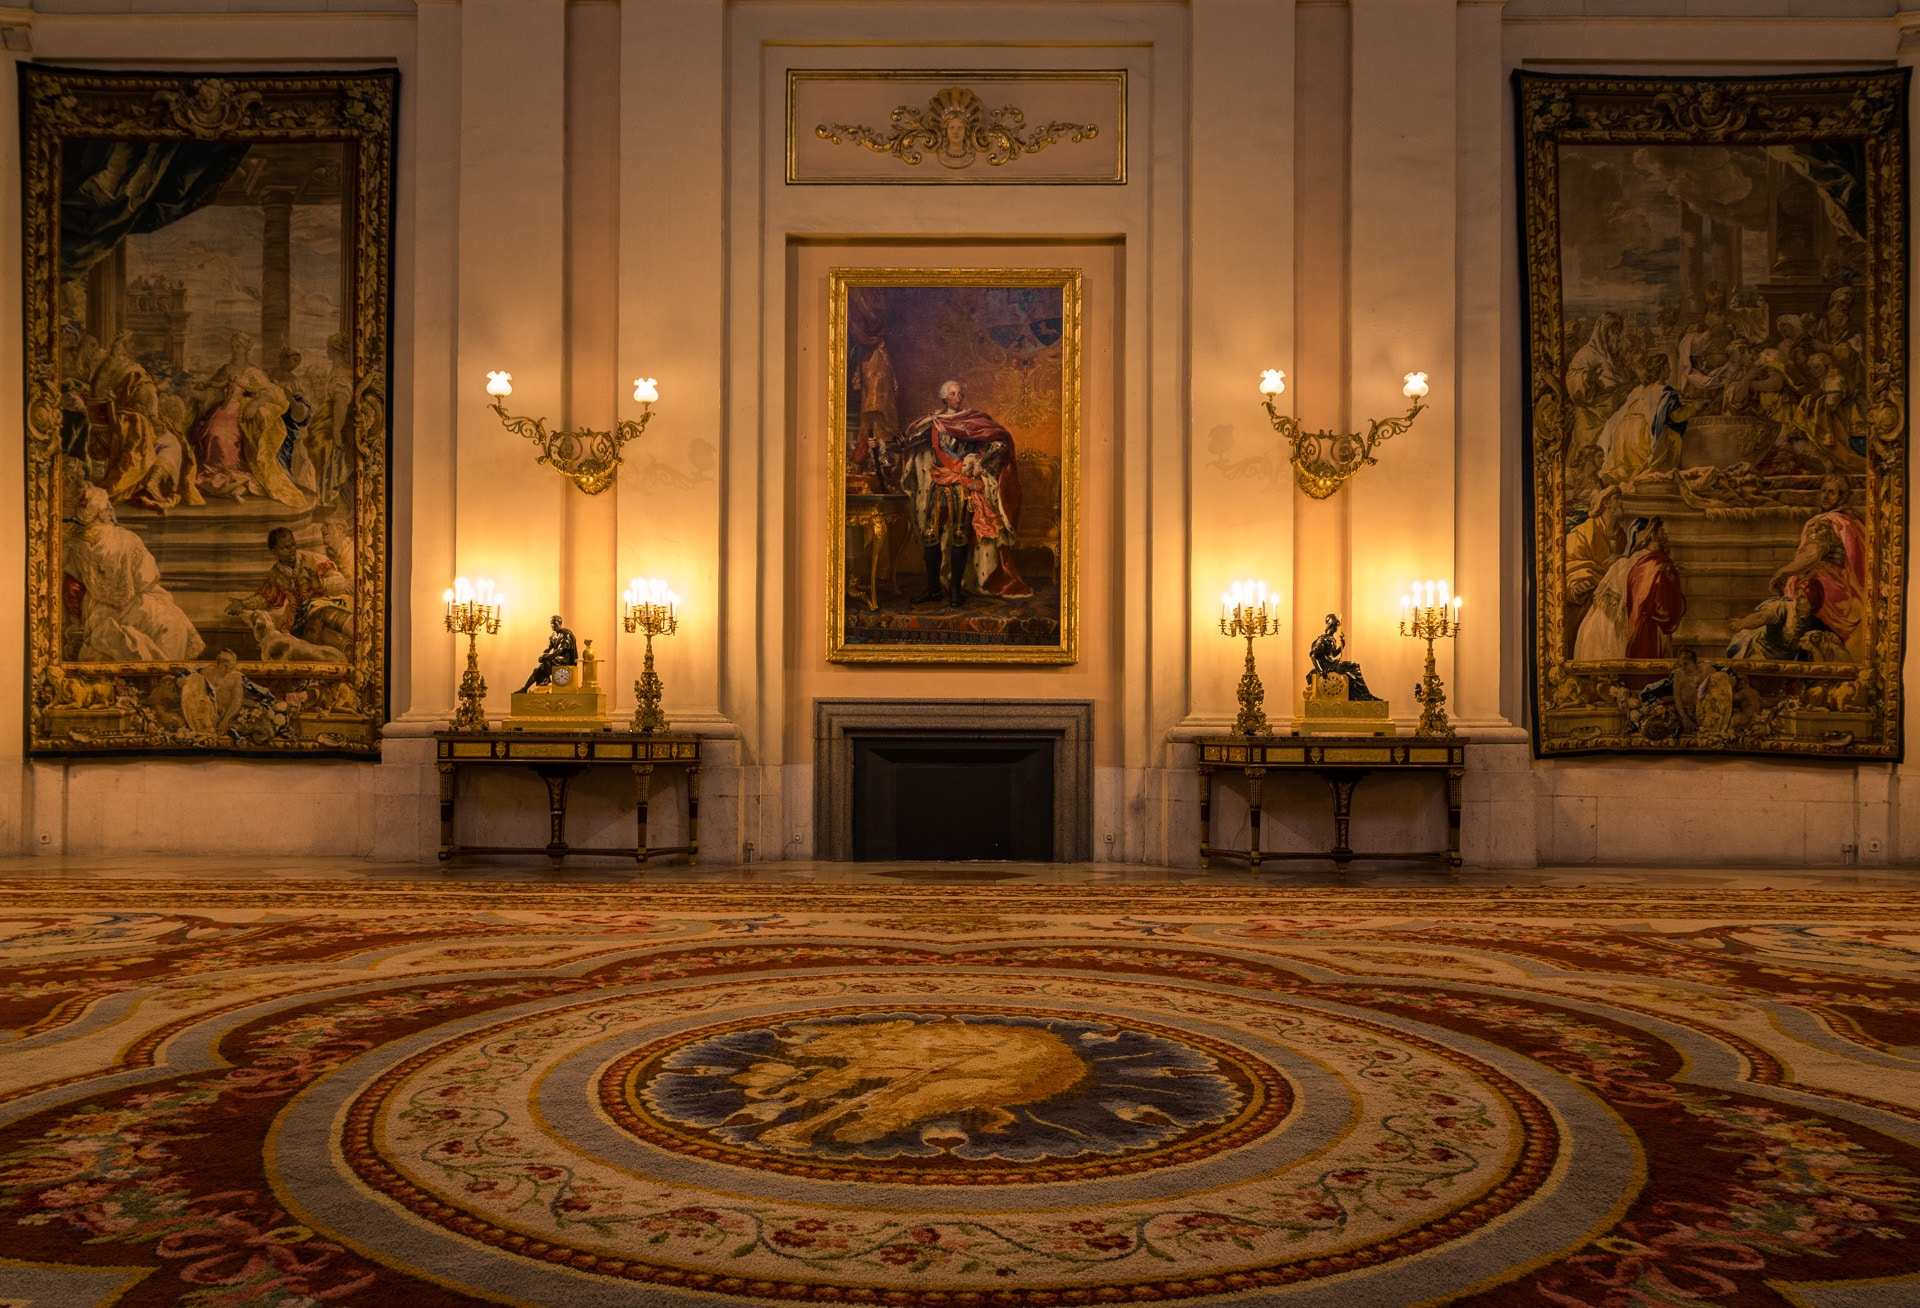 A room in royal palace with candles and a portrait